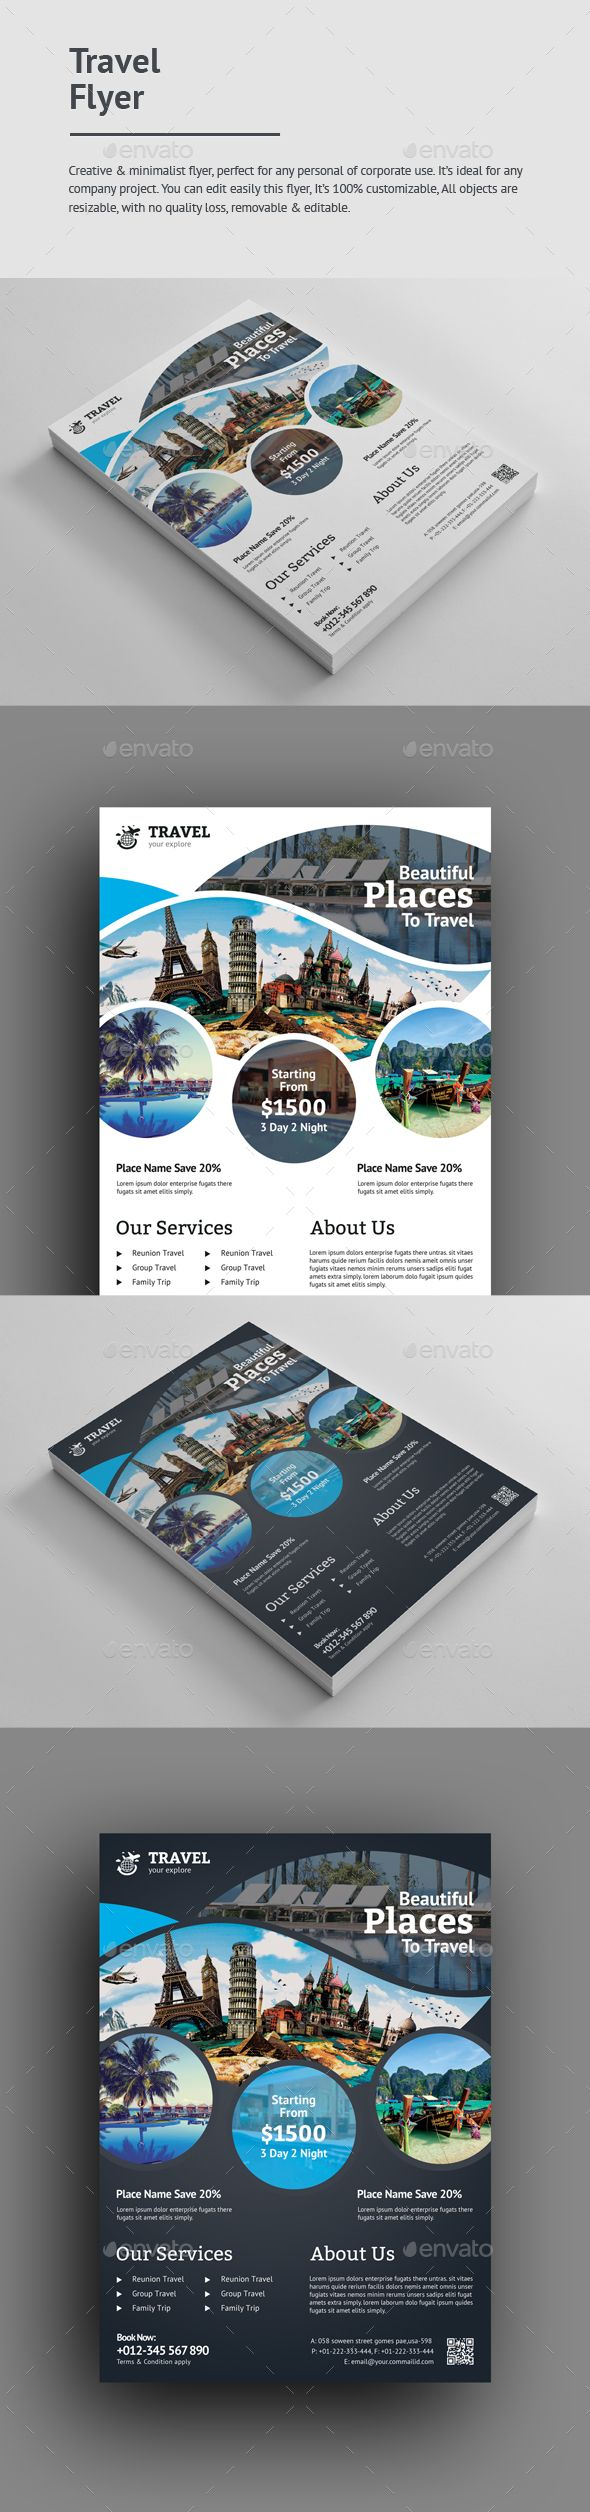 Travel Flyer Template Psd  Travel Design Layout